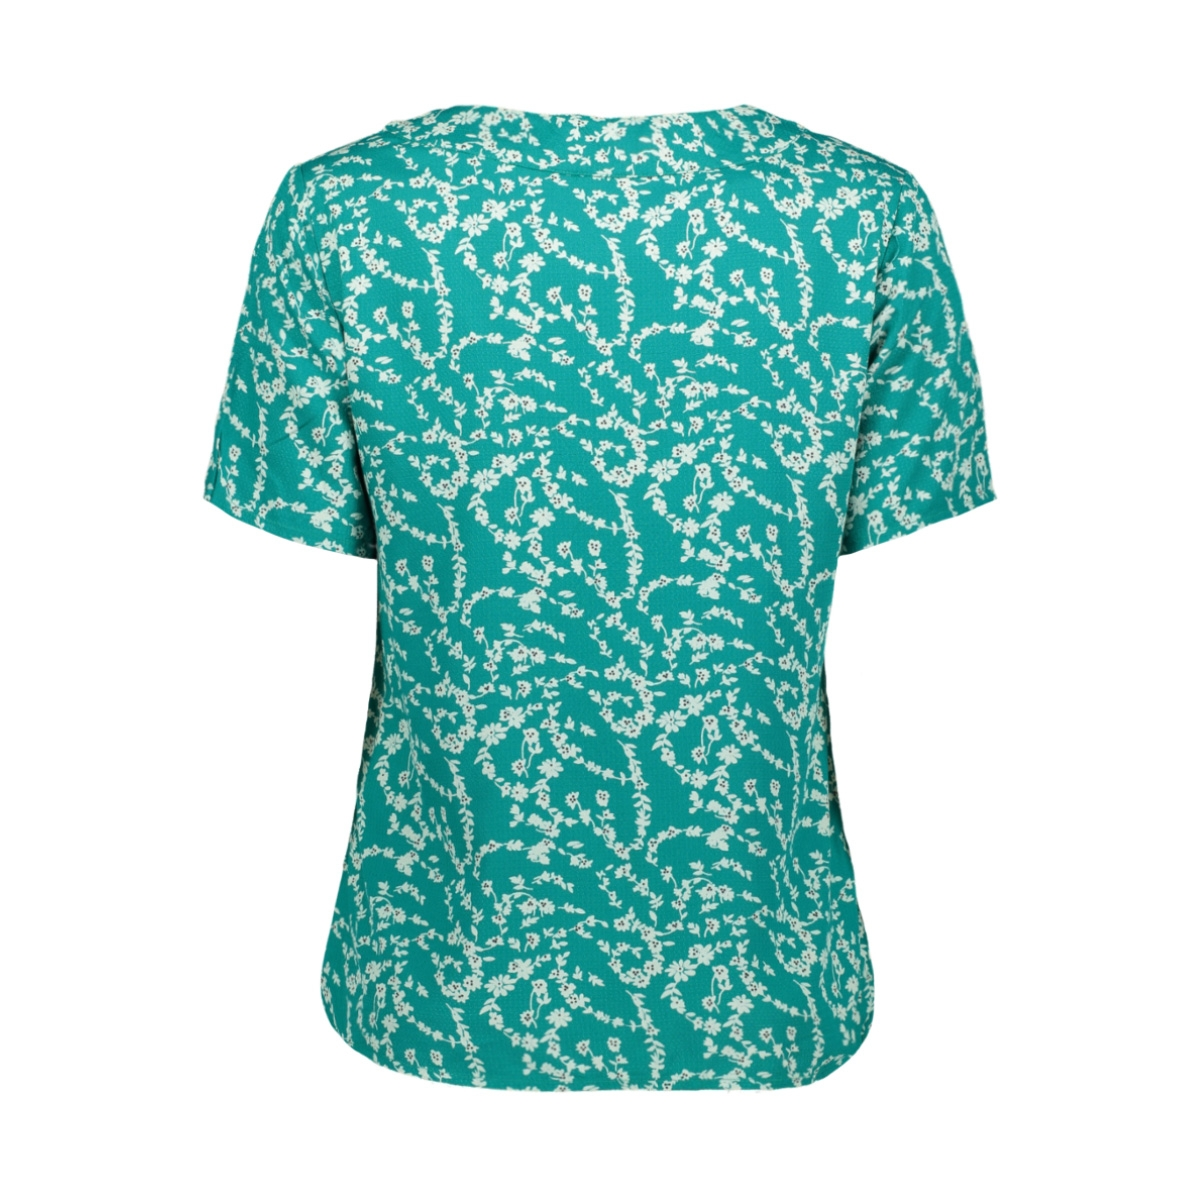 pcnadin ss top 17101854 pieces t-shirt quetzal green/silhouette